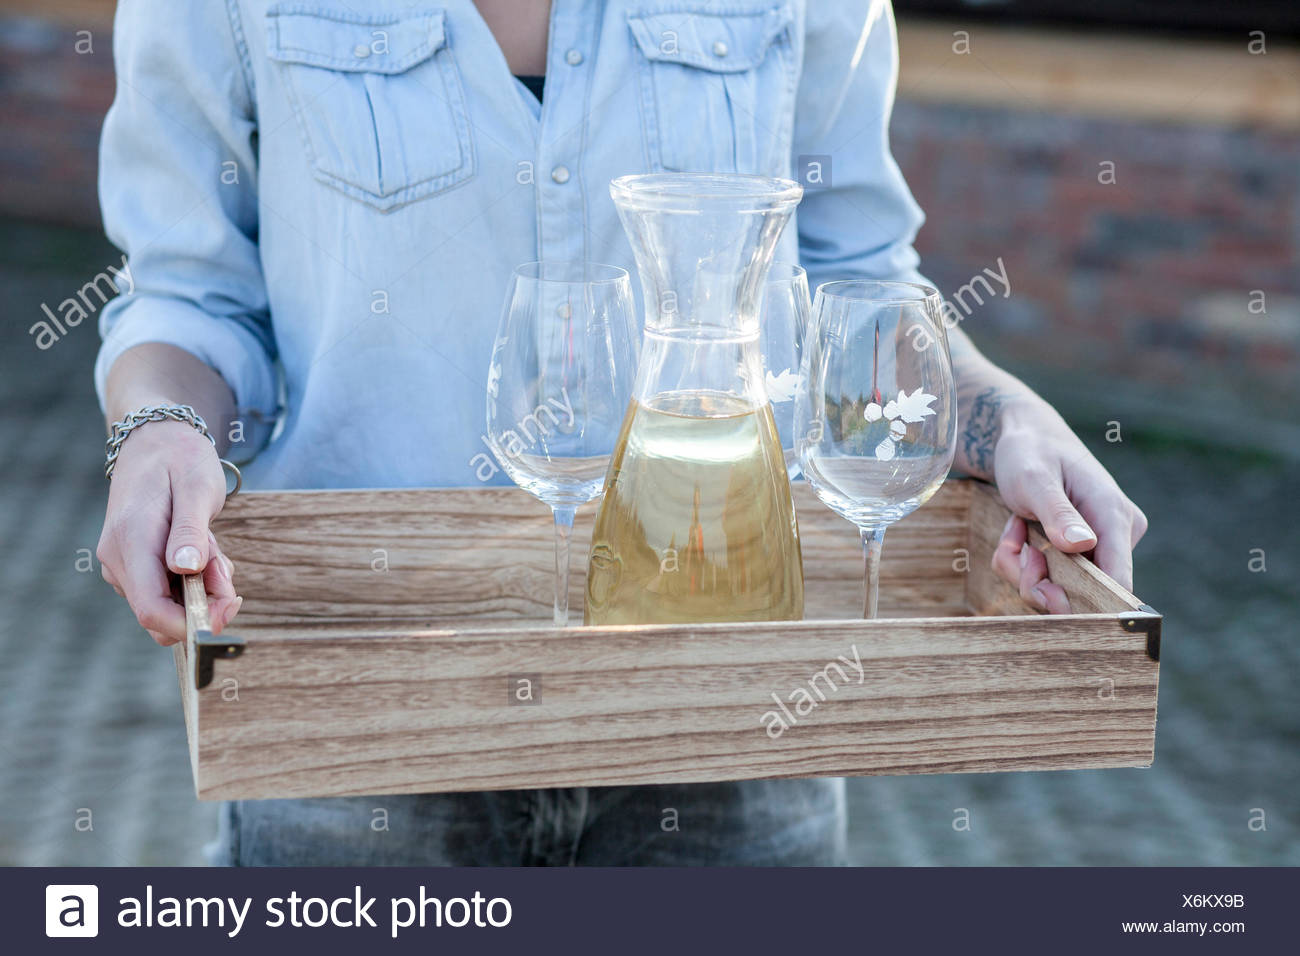 Woman serving white wine on tray - Stock Image